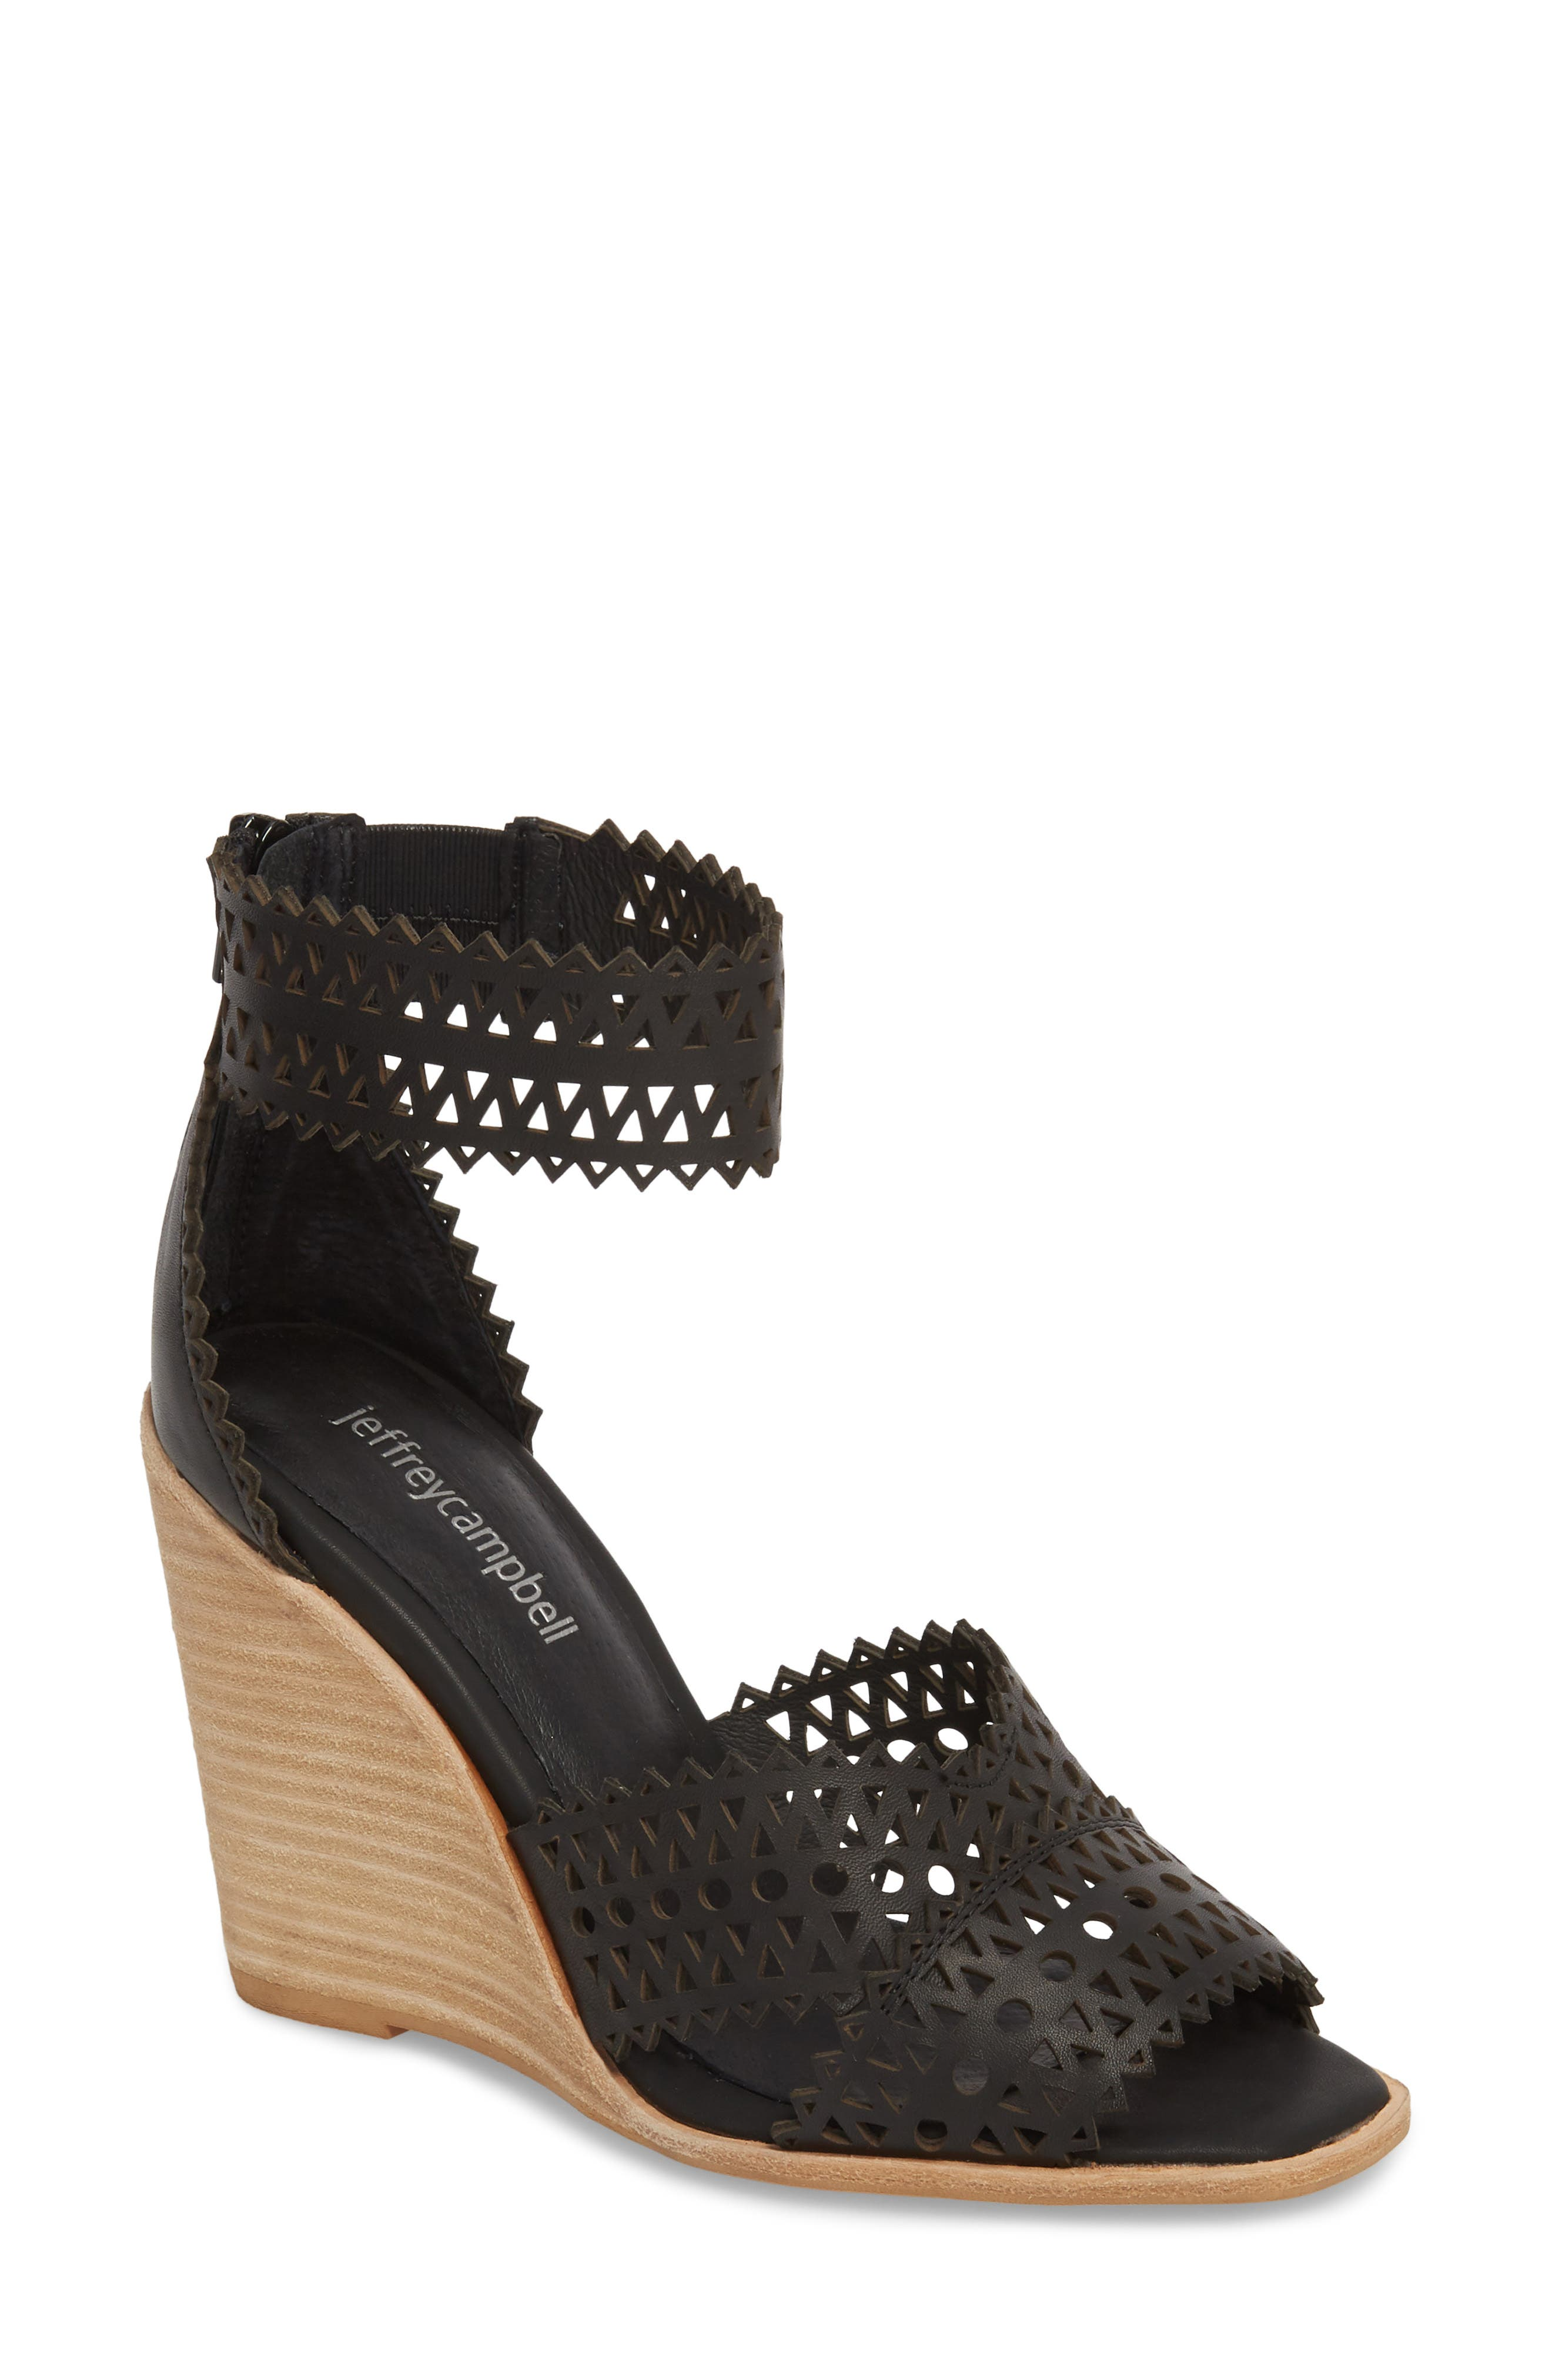 BESANTE PERFORATED WEDGE SANDAL